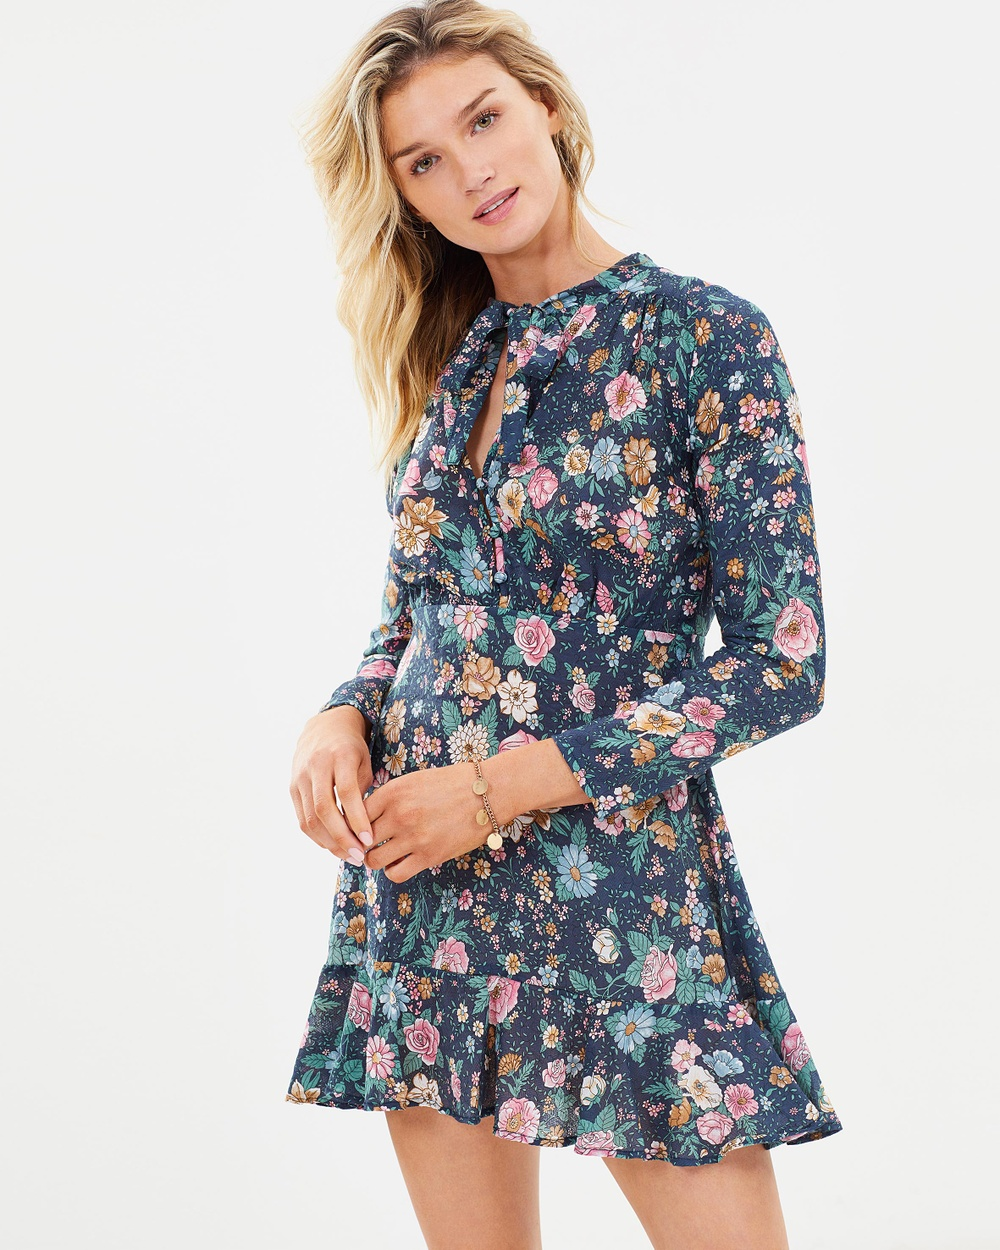 Auguste The Label Spring Rose Wylde Long Sleeve Mini Dress Printed Dresses Navy Spring Rose Wylde Long Sleeve Mini Dress